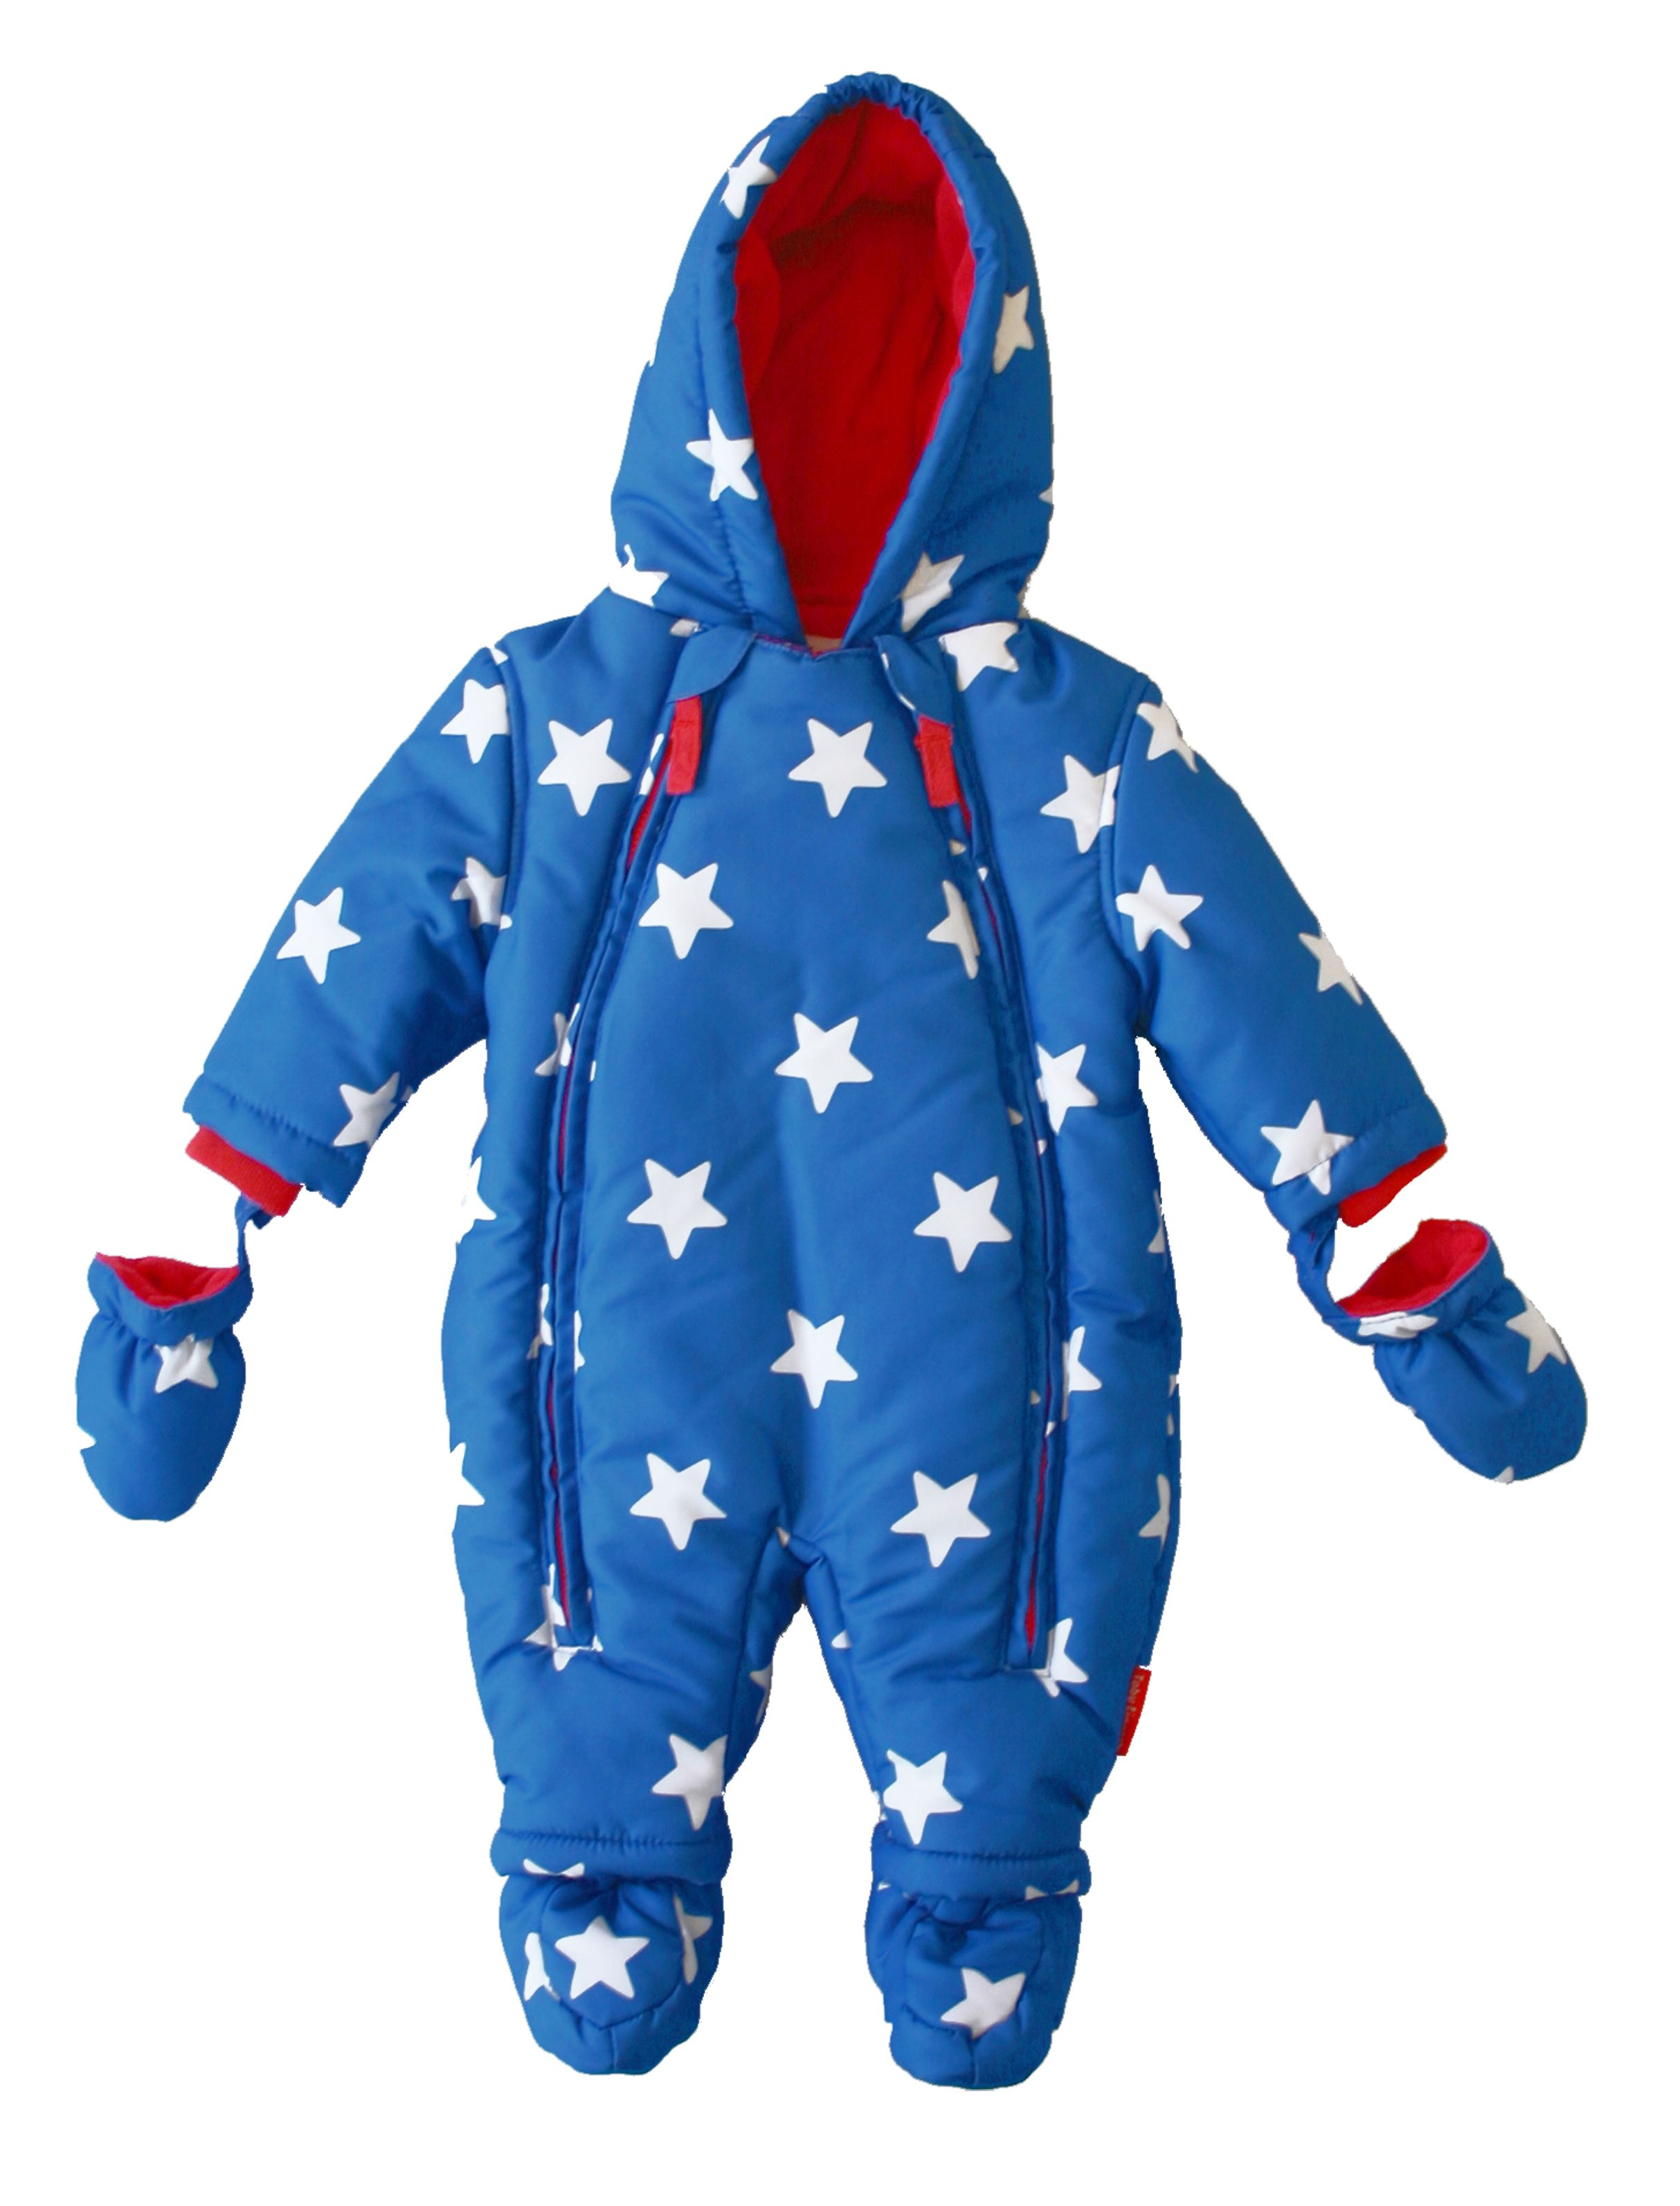 Toby Tiger Baby hooded fleece lined snowsuit, Blue